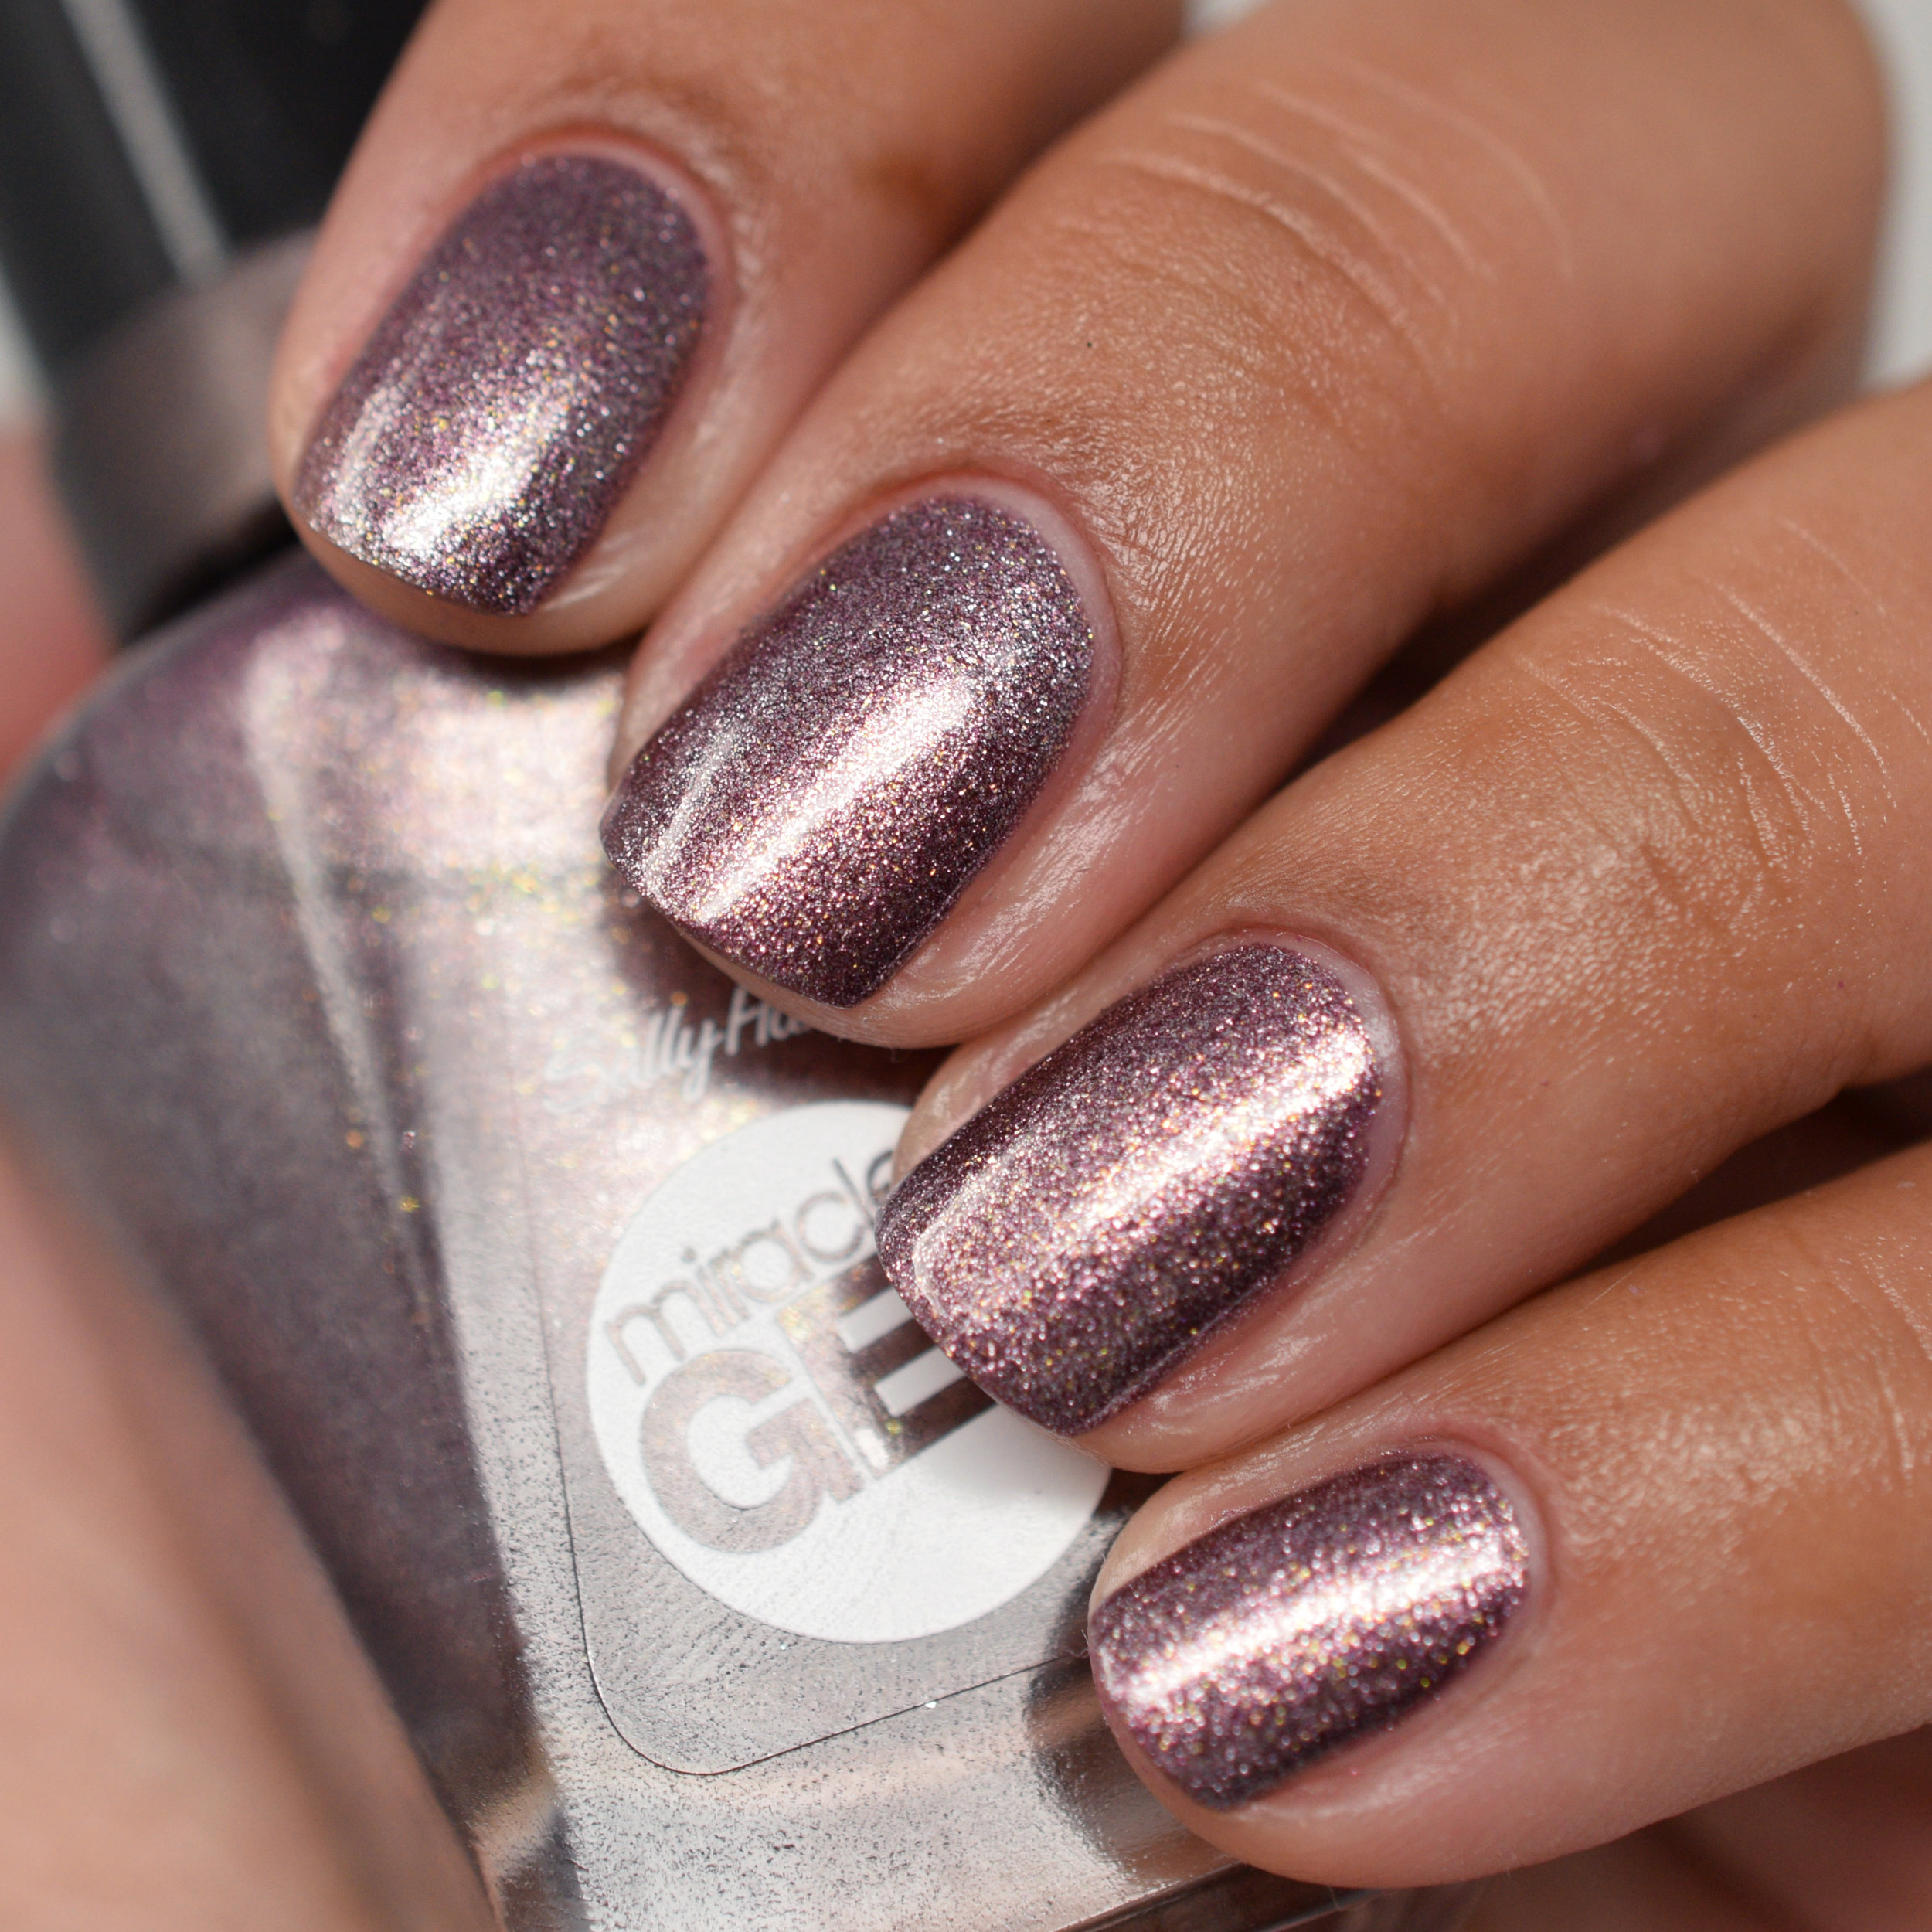 Drugstore Digging: Sally Hansen Miracle Gel — Throwback Lacquer